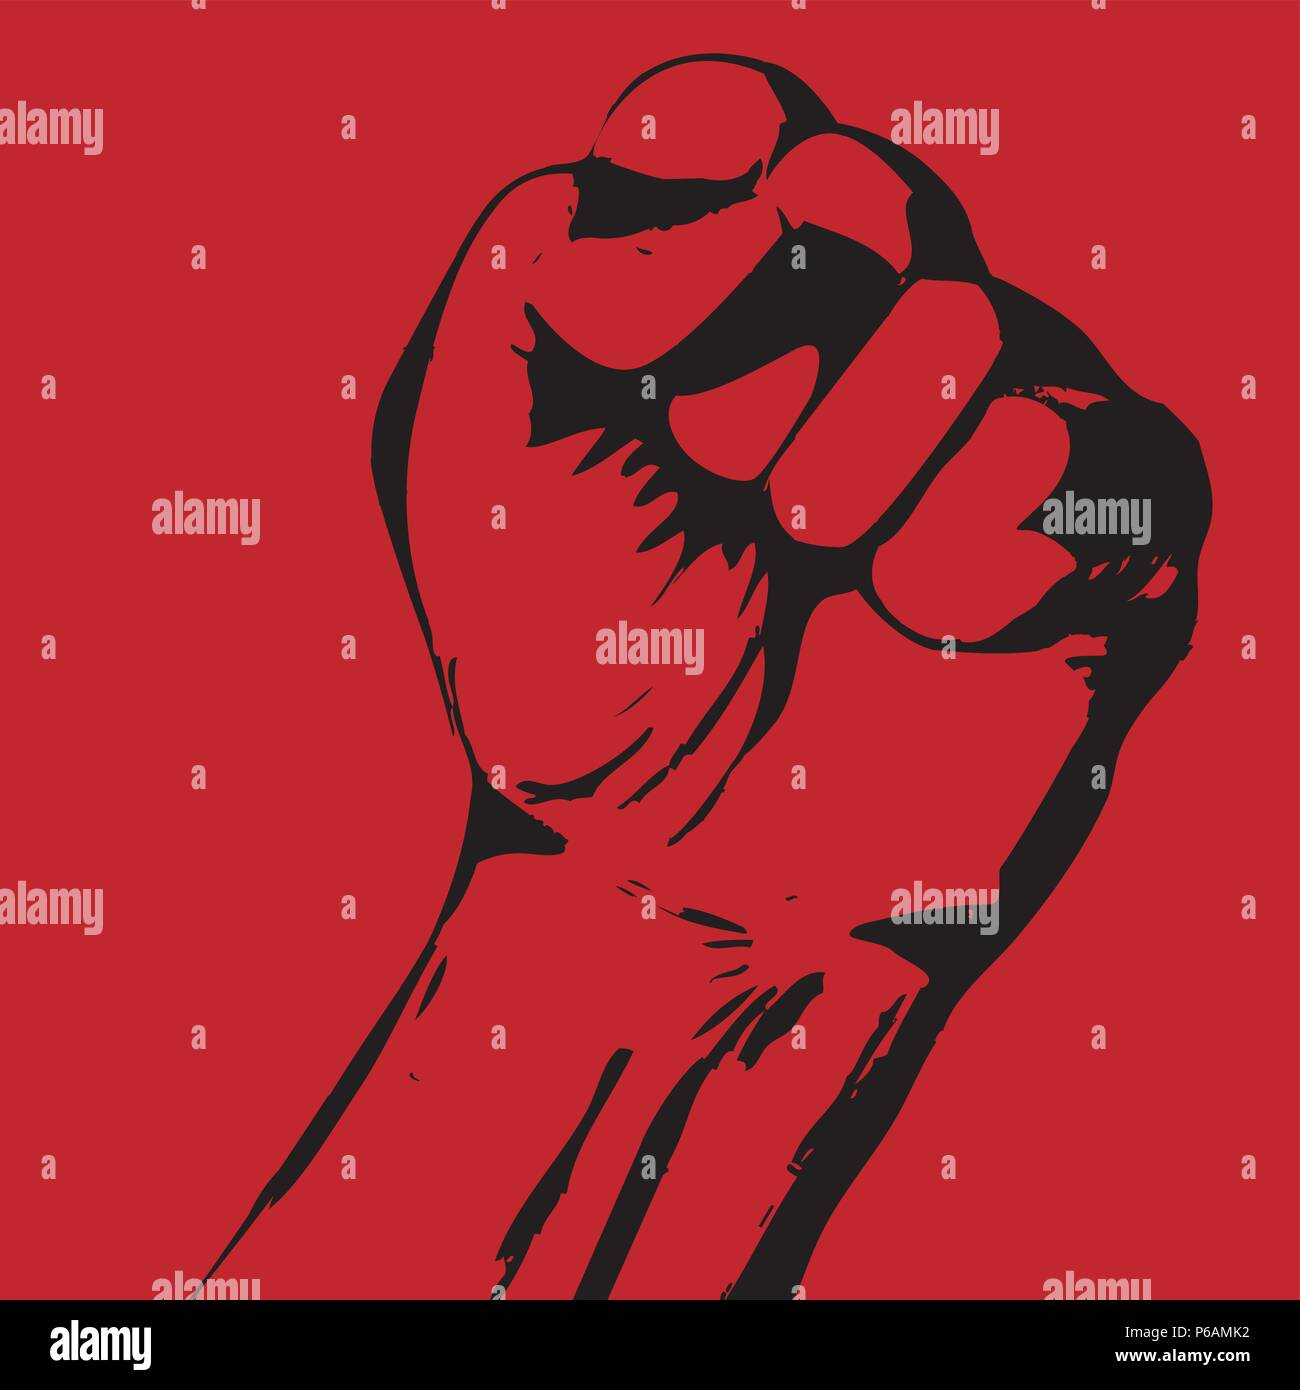 Strike poster with tight fist - protest concept - Stock Vector